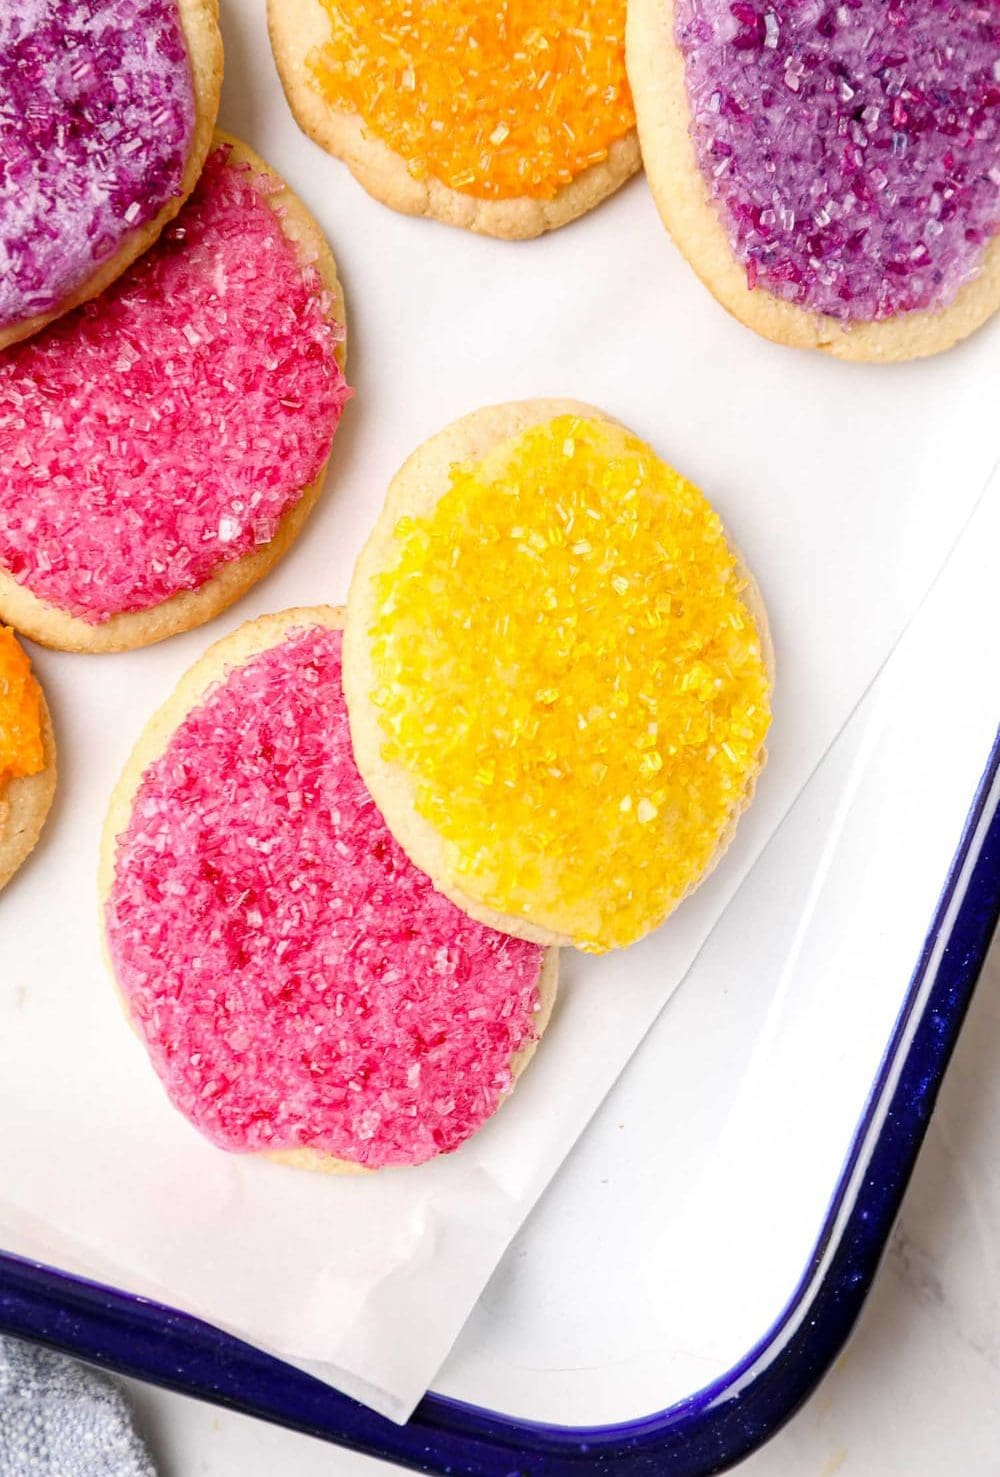 Grain free Easter egg sugar cookies with frosting and sprinkles.